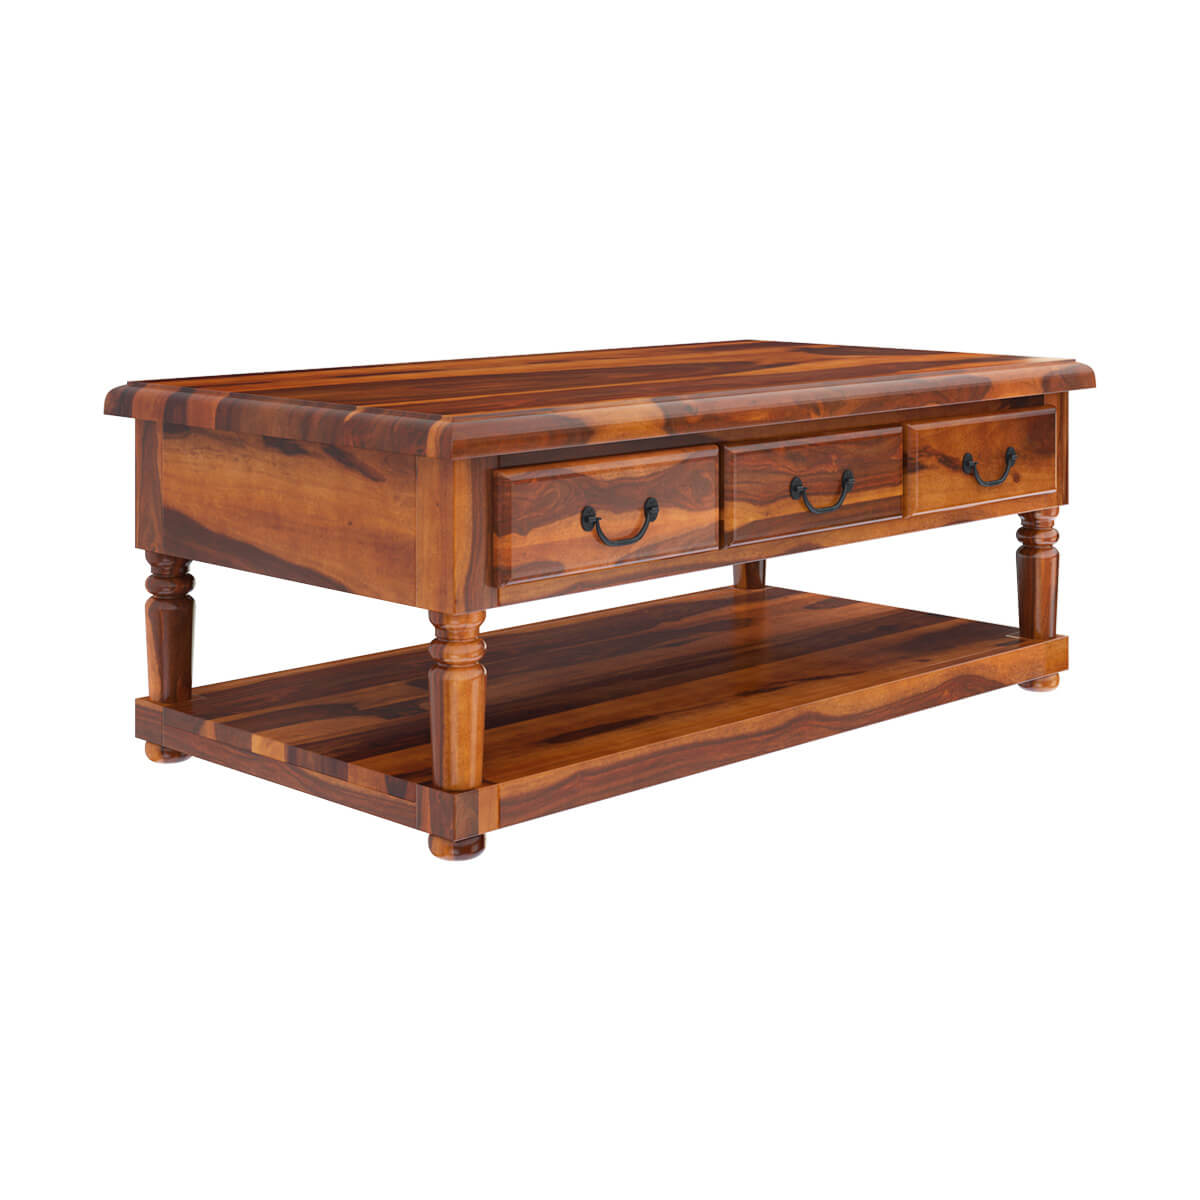 Solid Wood Coffee Table With Drawers: Solid Wood 3 Drawer Baluster Coffee Table